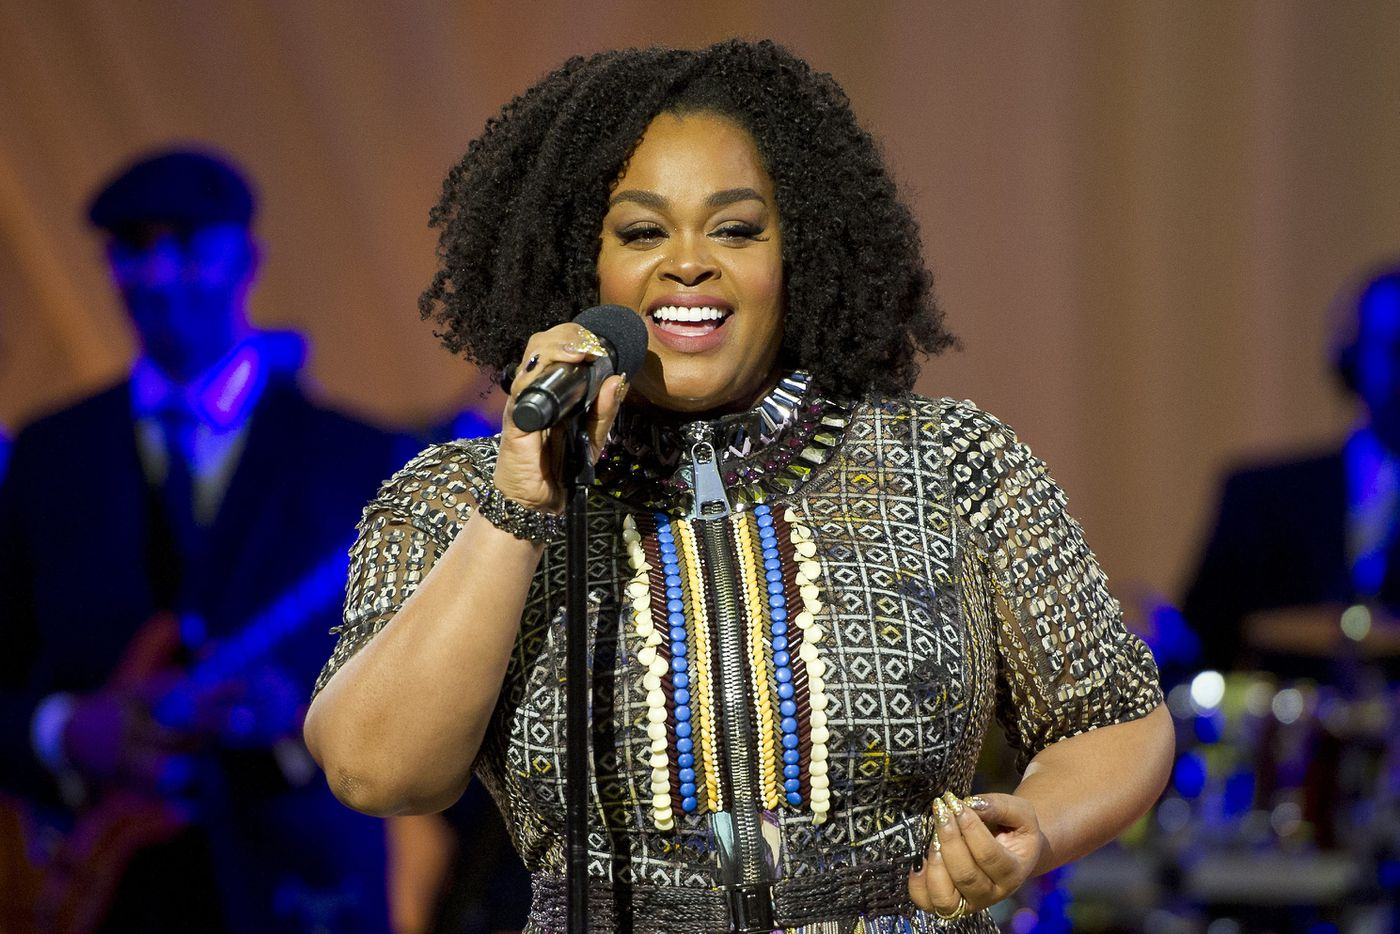 Jill Scott joins cast of Paramount Network's 'First Wives Club'